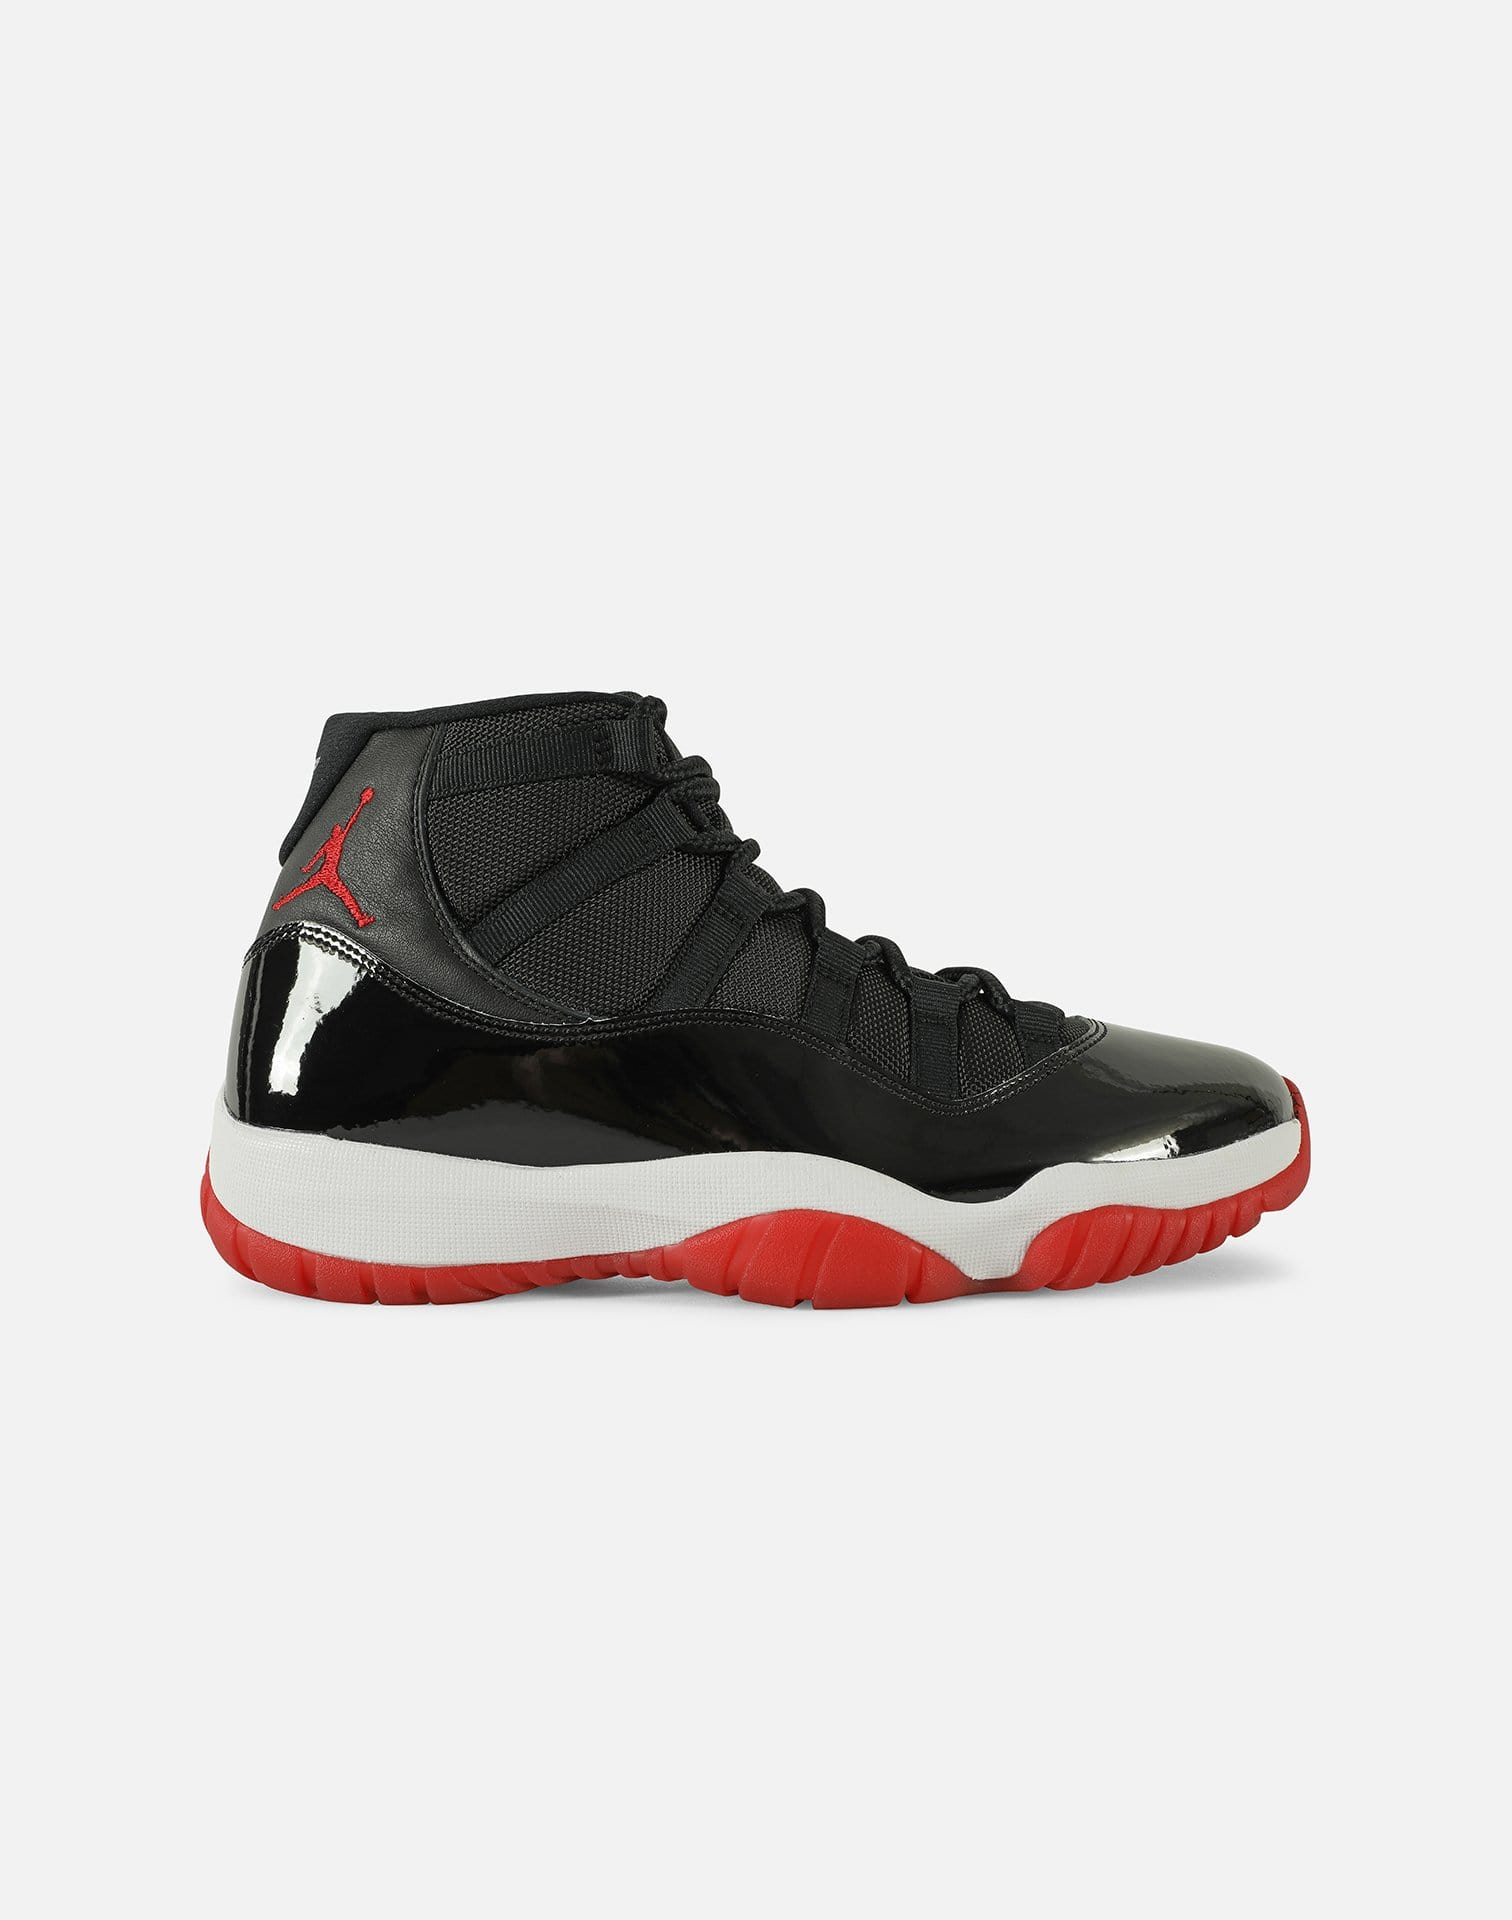 Jordan AIR JORDAN RETRO 11'BRED'